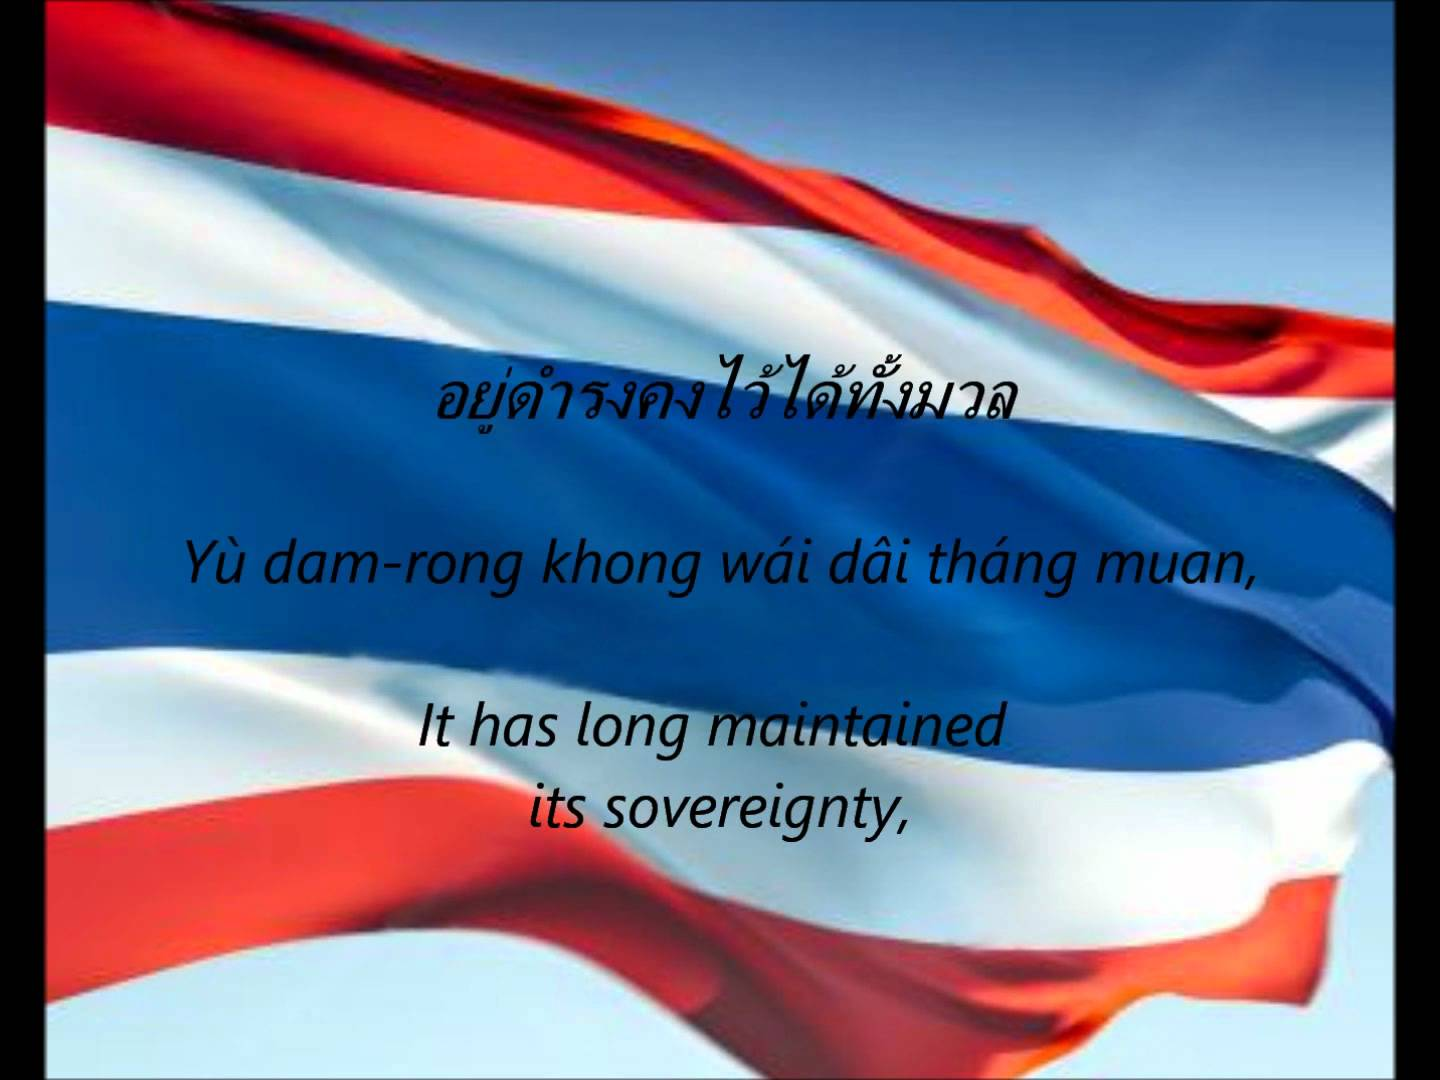 Phleng Chat Thai - The National Anthem of Thailand